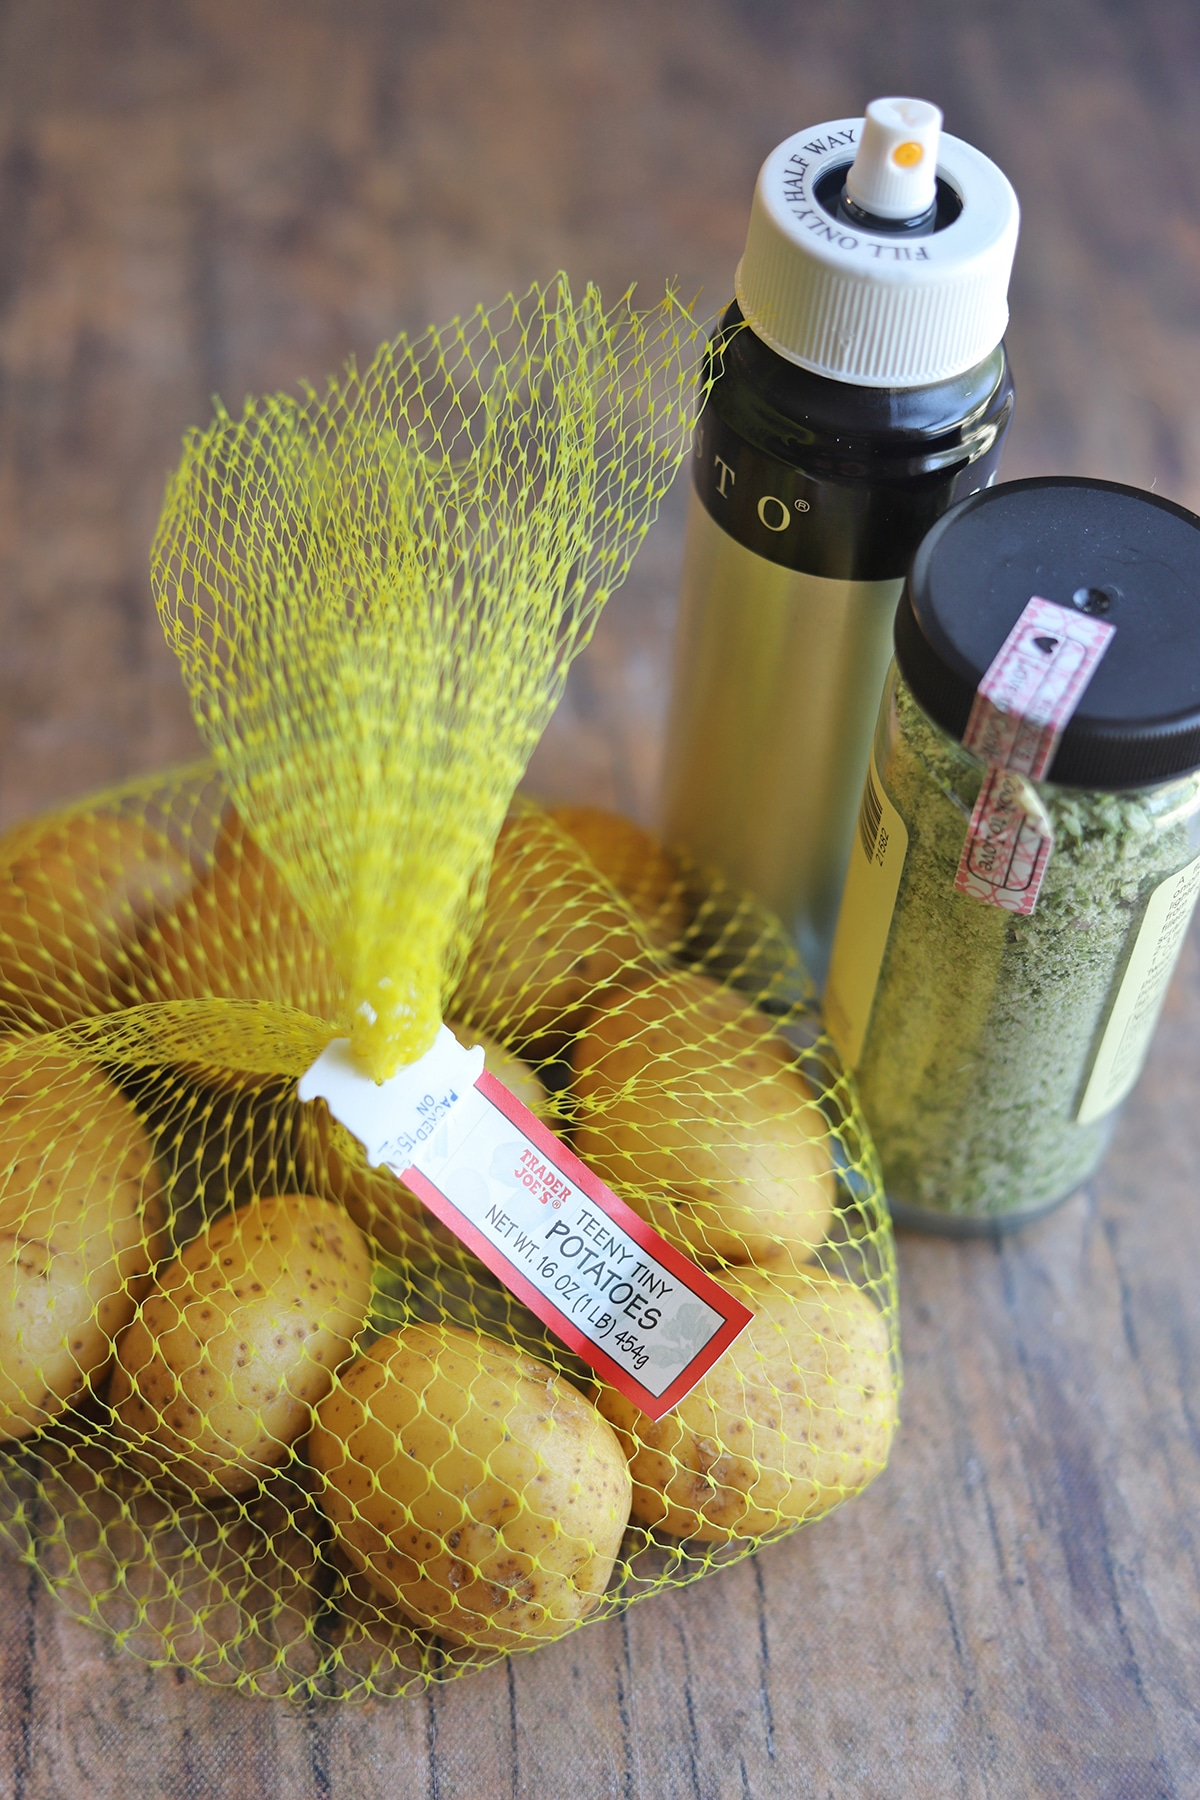 Baby potatoes in bag by seasoning and oil spray.